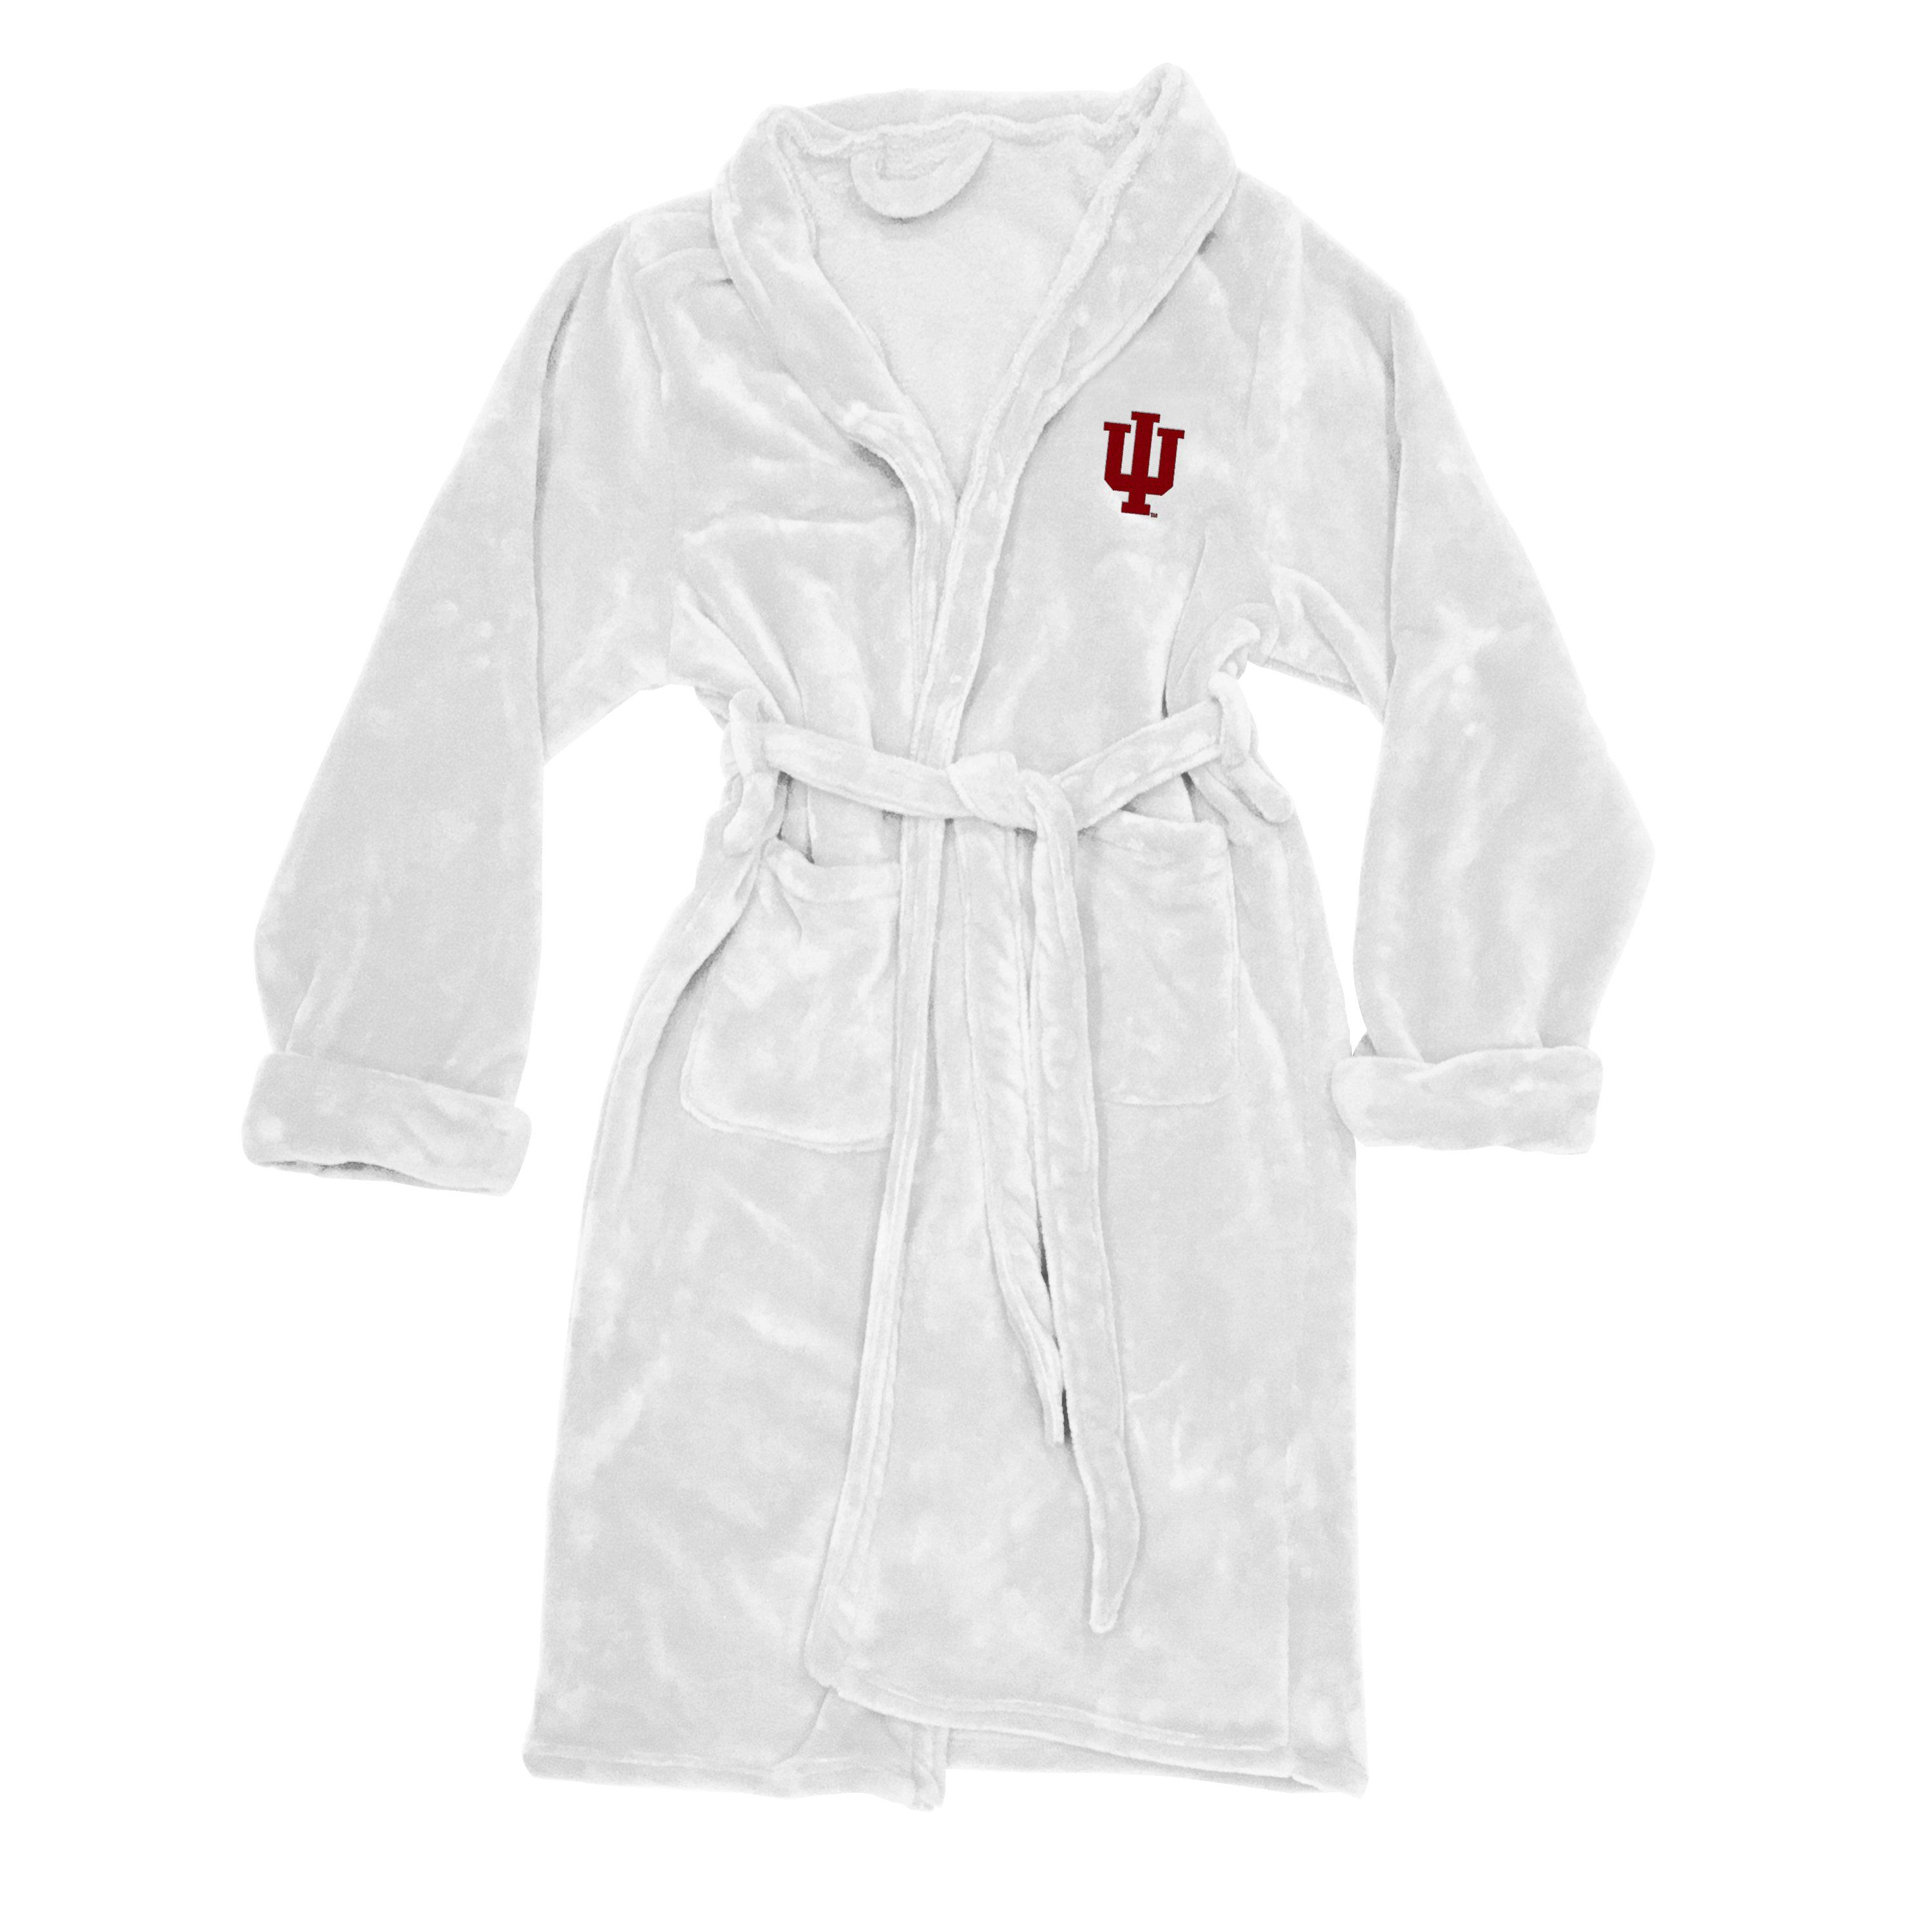 32b7cf3a Indiana Hoosiers Men's Silk Touch Plush Bath Robe | New Items in the ...